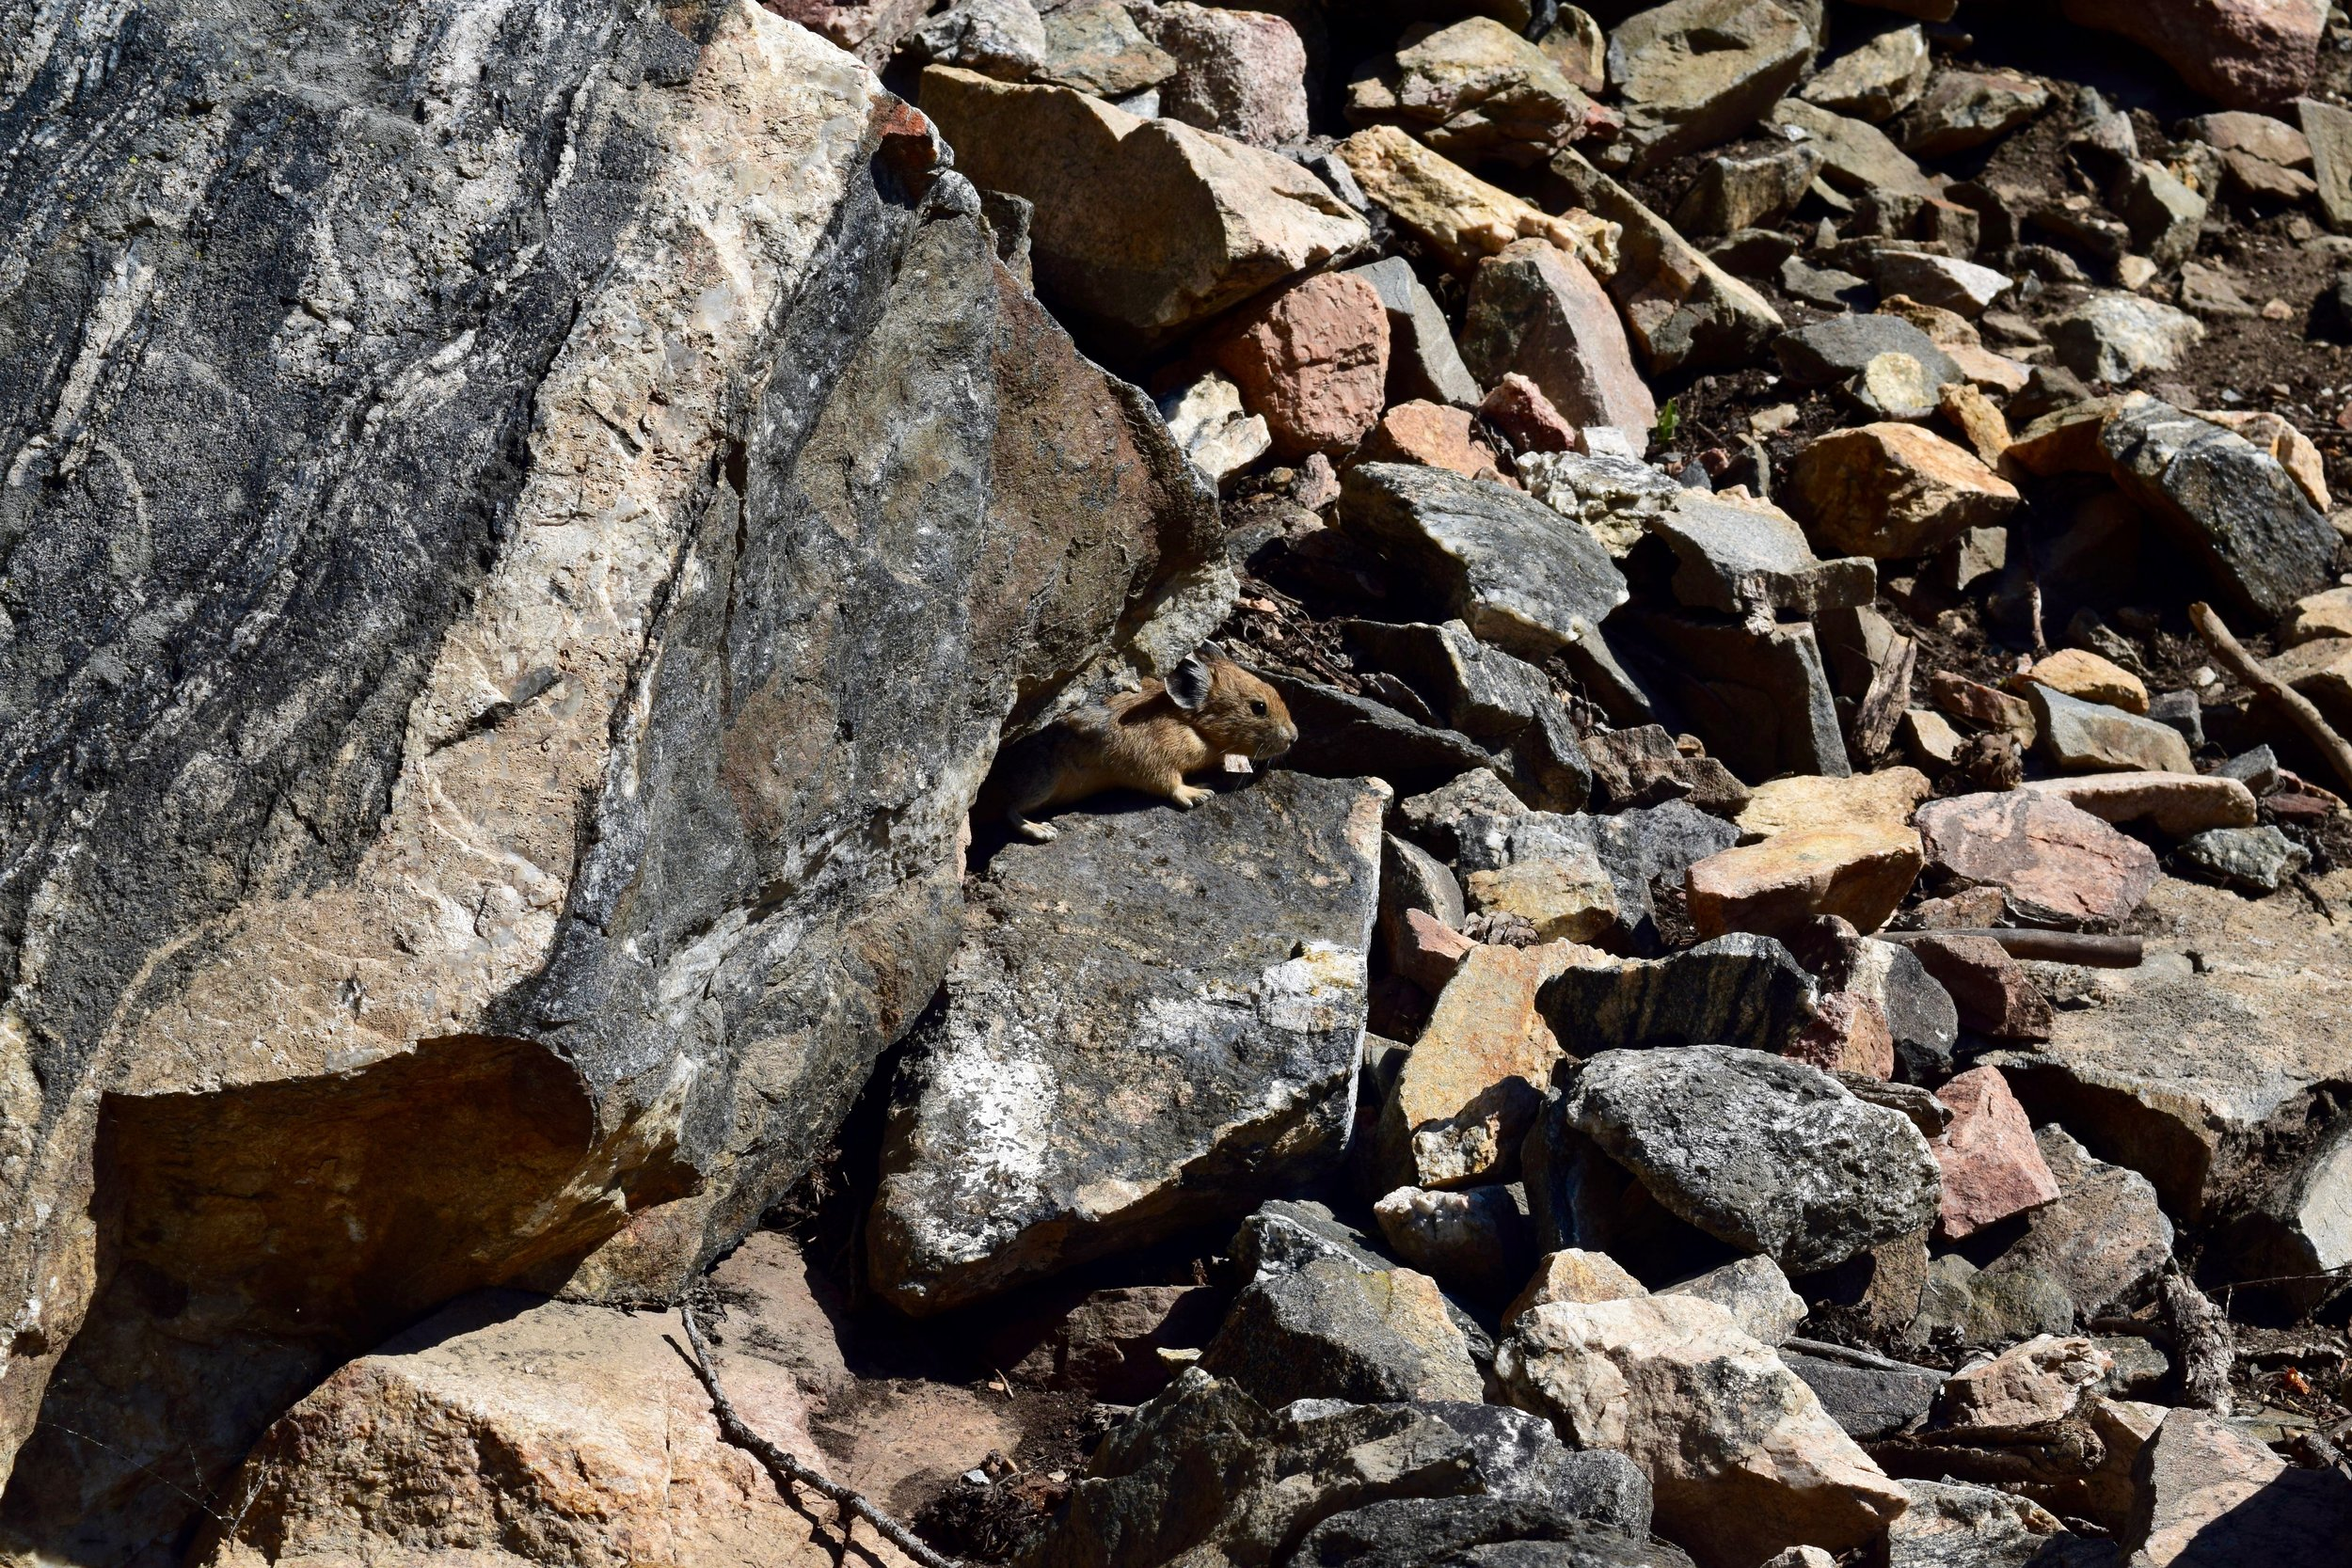 I found a little pika friend on the way up!